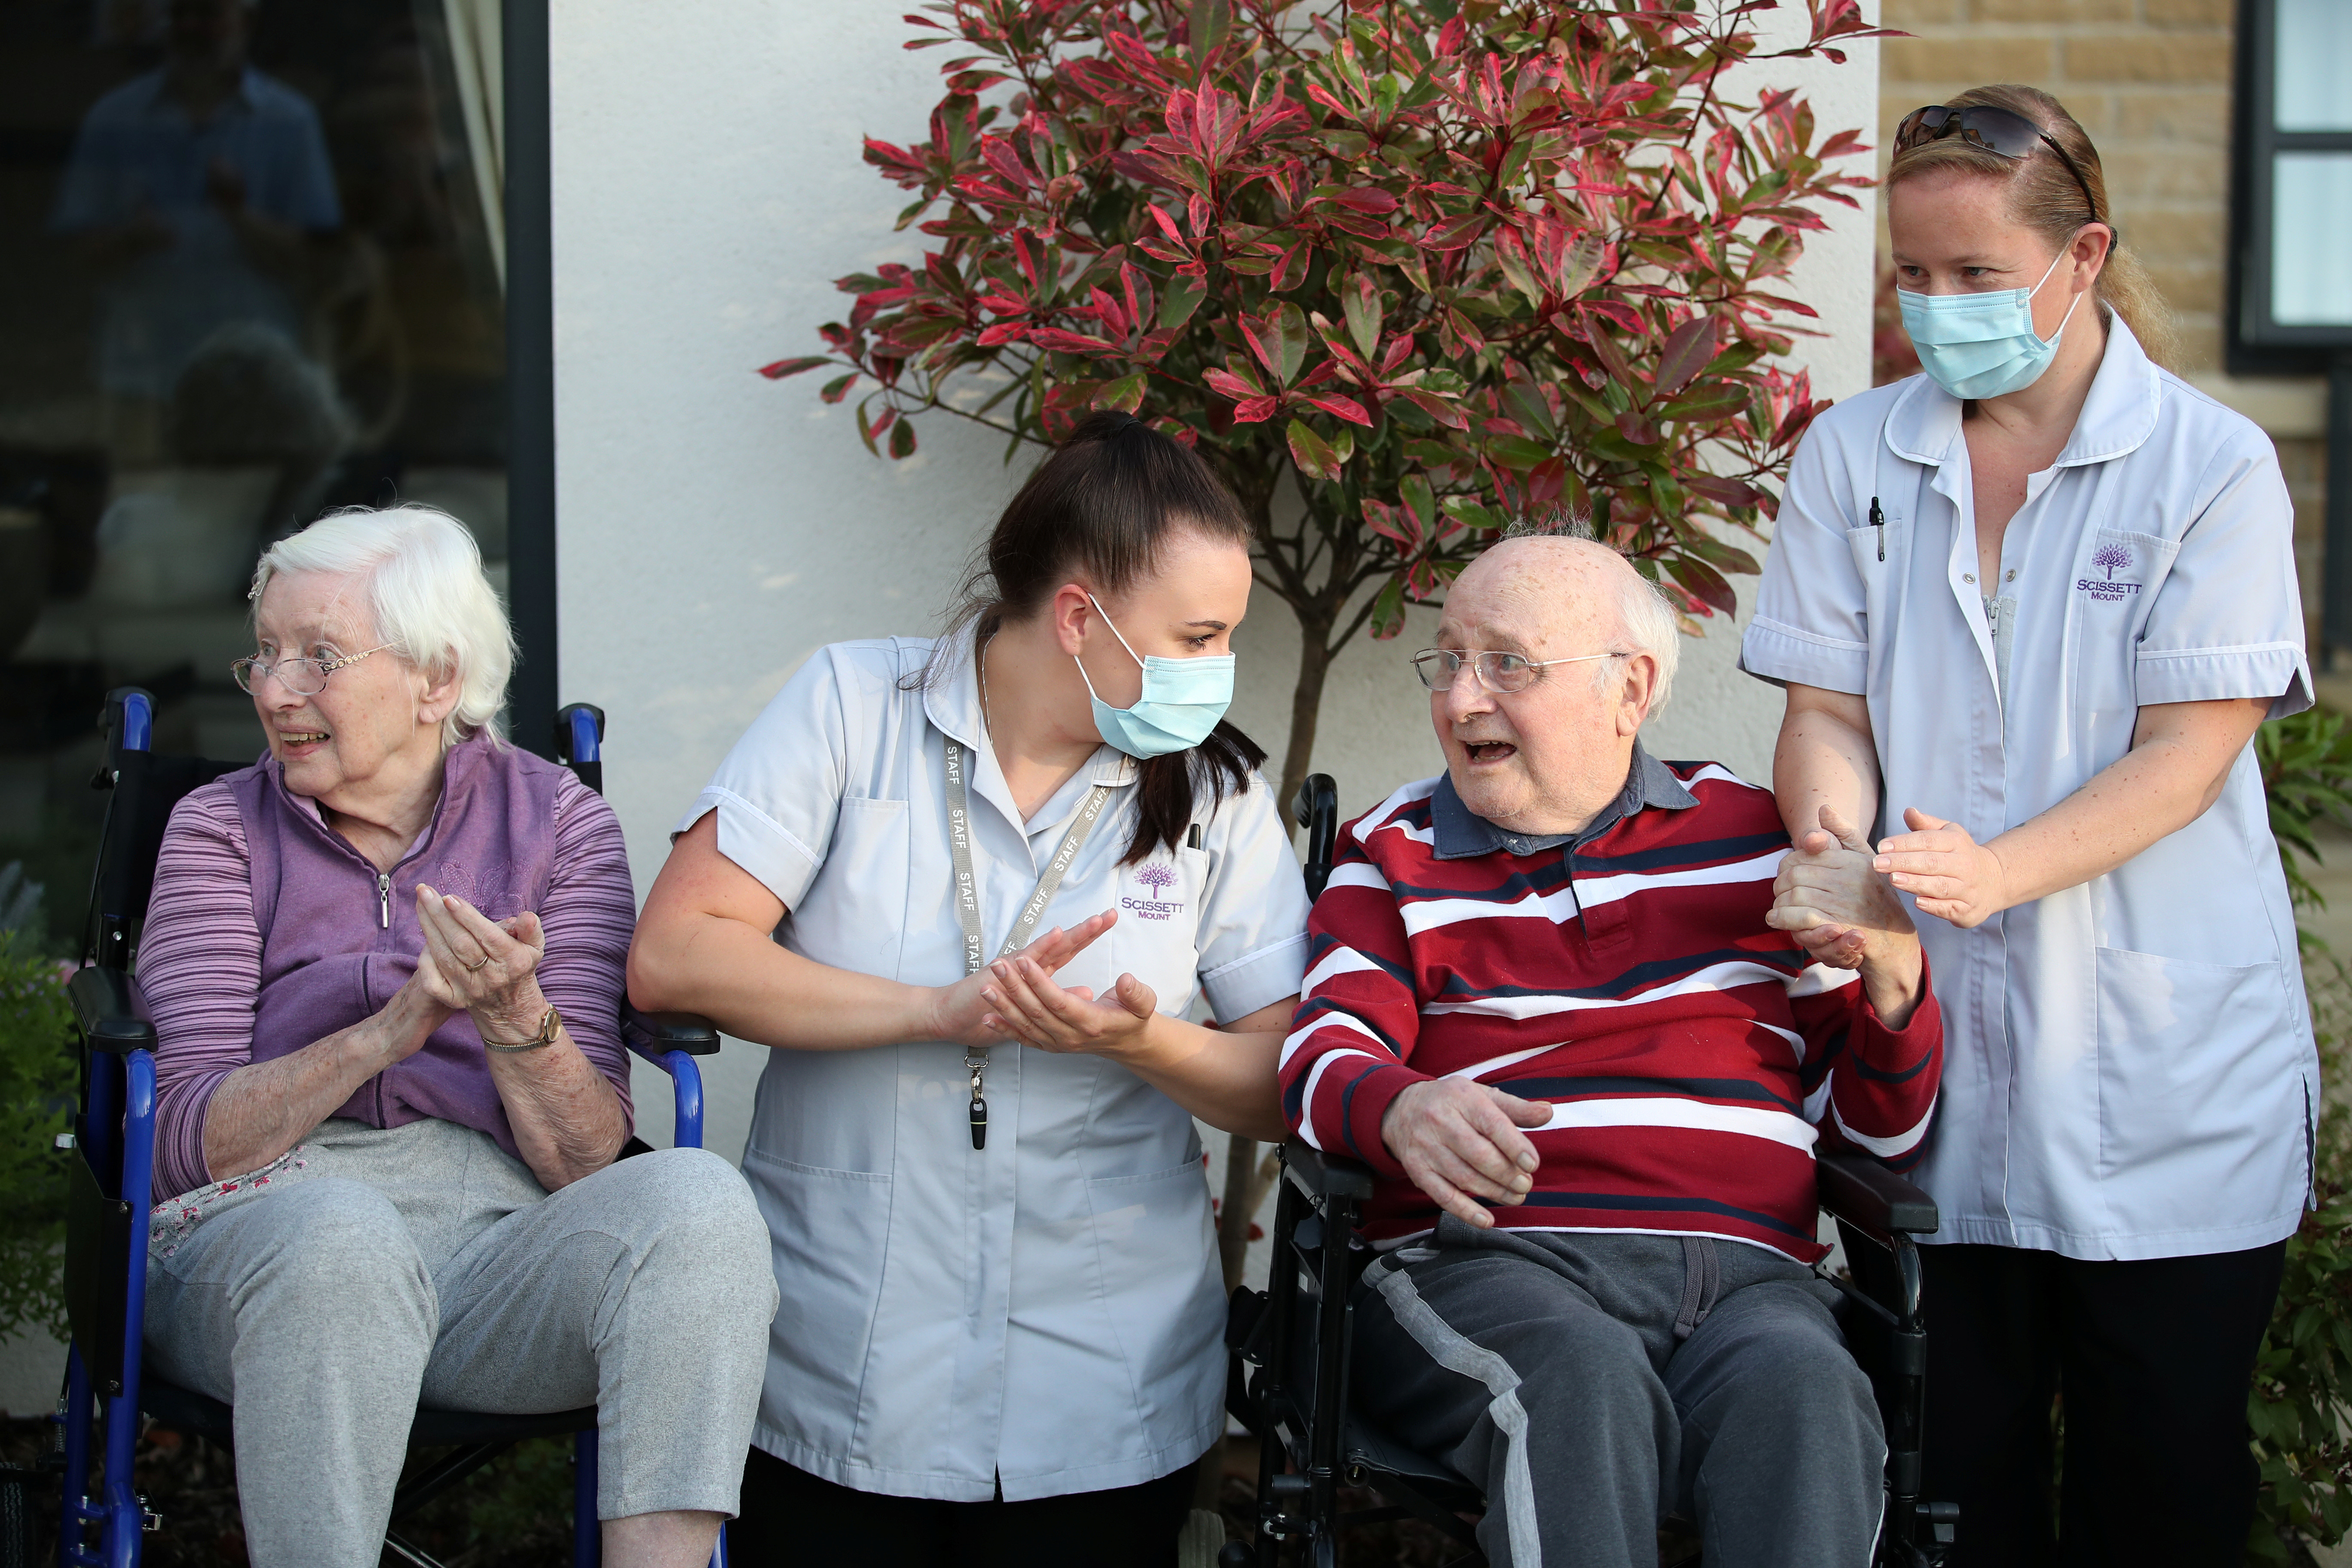 Care workers and residents of the Scisset Mount Care Home react during the last day of the Clap for our Carers campaign in support of the NHS, following the outbreak of the coronavirus disease (COVID-19), Huddersfield, Britain, May 28, 2020